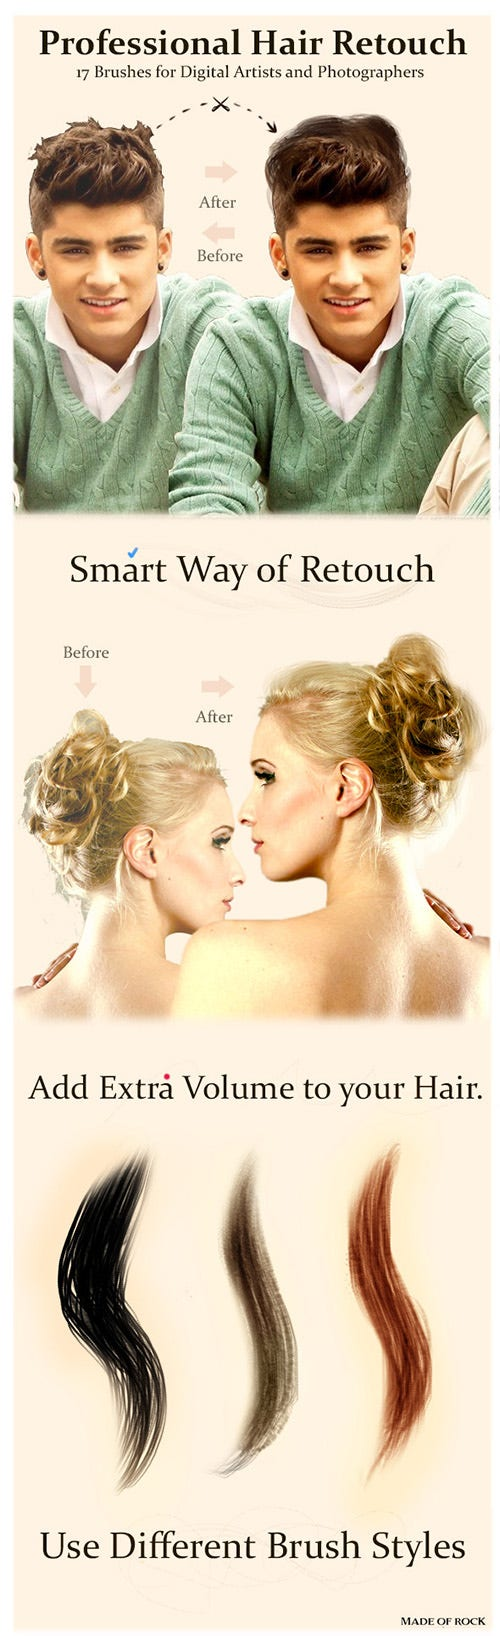 17 professional hair retouch brushes